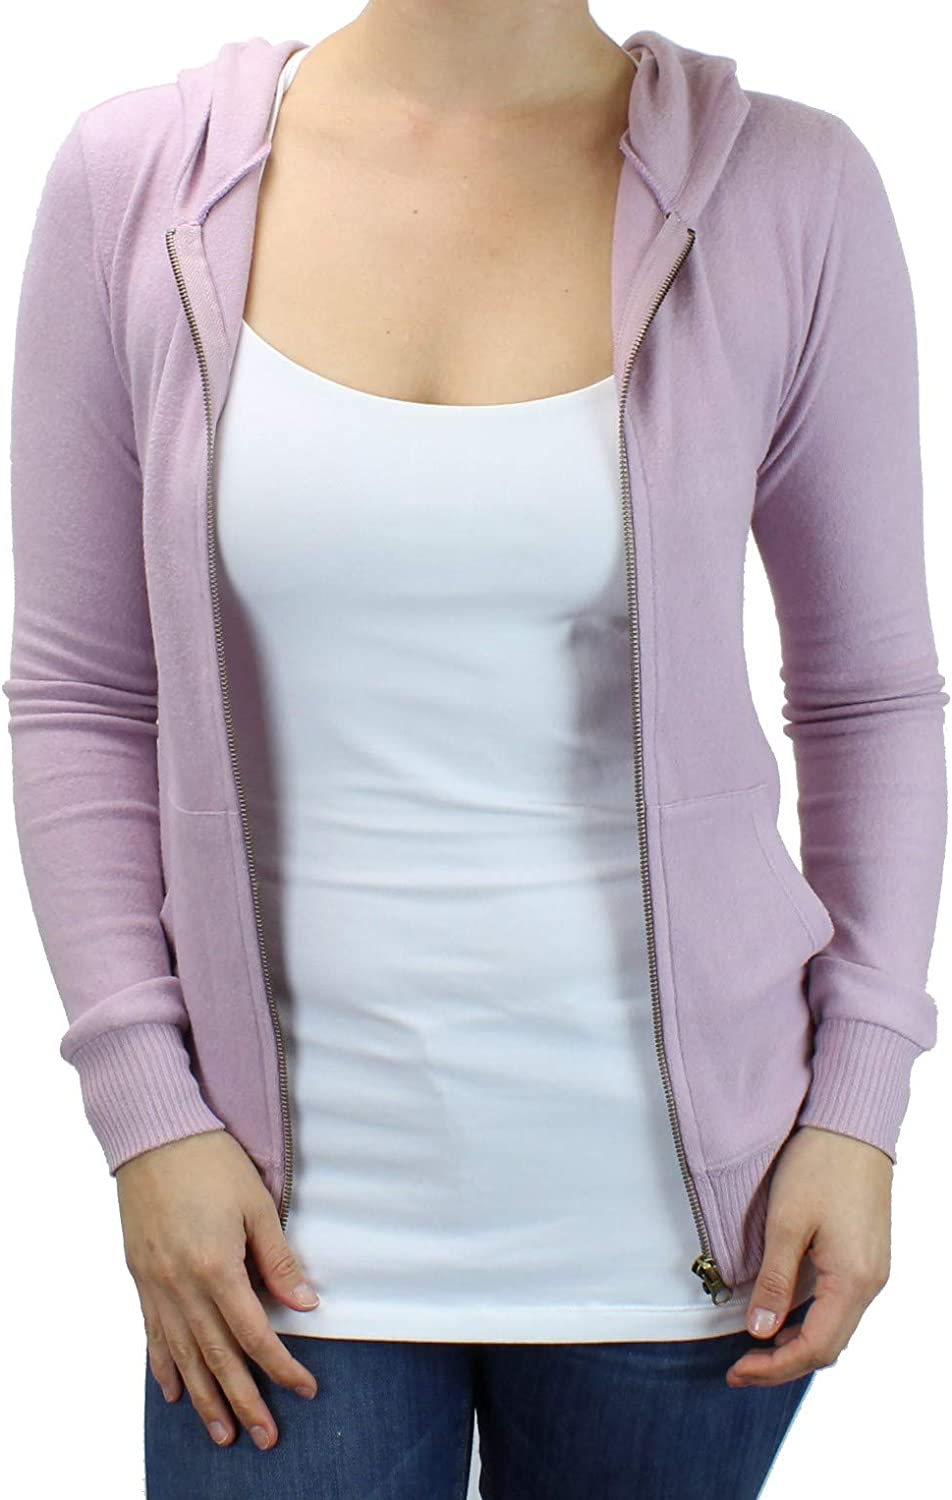 Cute Comfy Fitted Lounge Hoodie Ms Lovely Womens Ultra Soft Zip-Up Hooded Sweatshirt